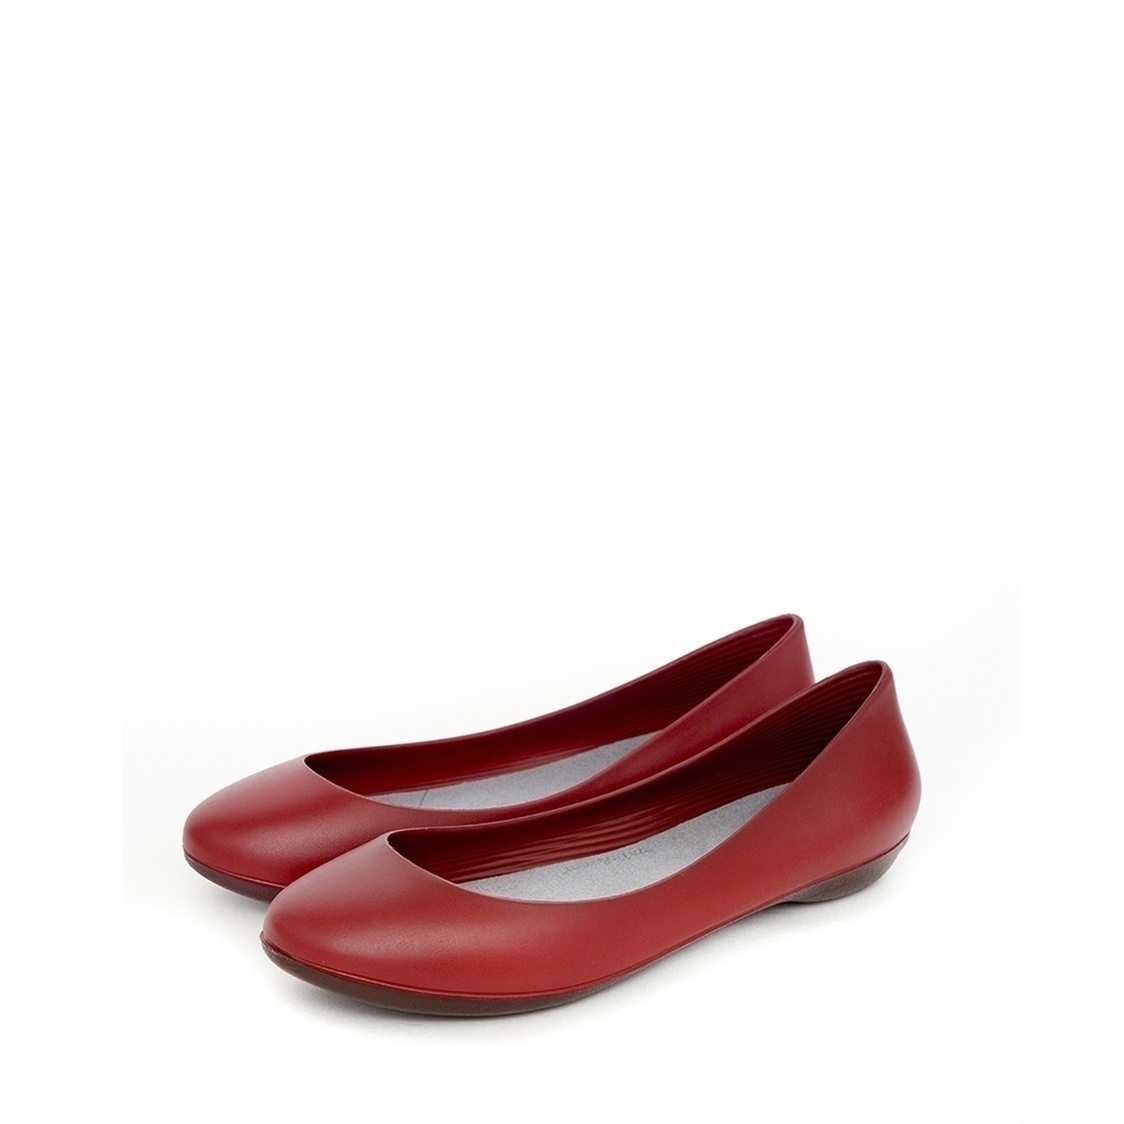 F2 Flat-Rounded Heel height 2cm Denim Red